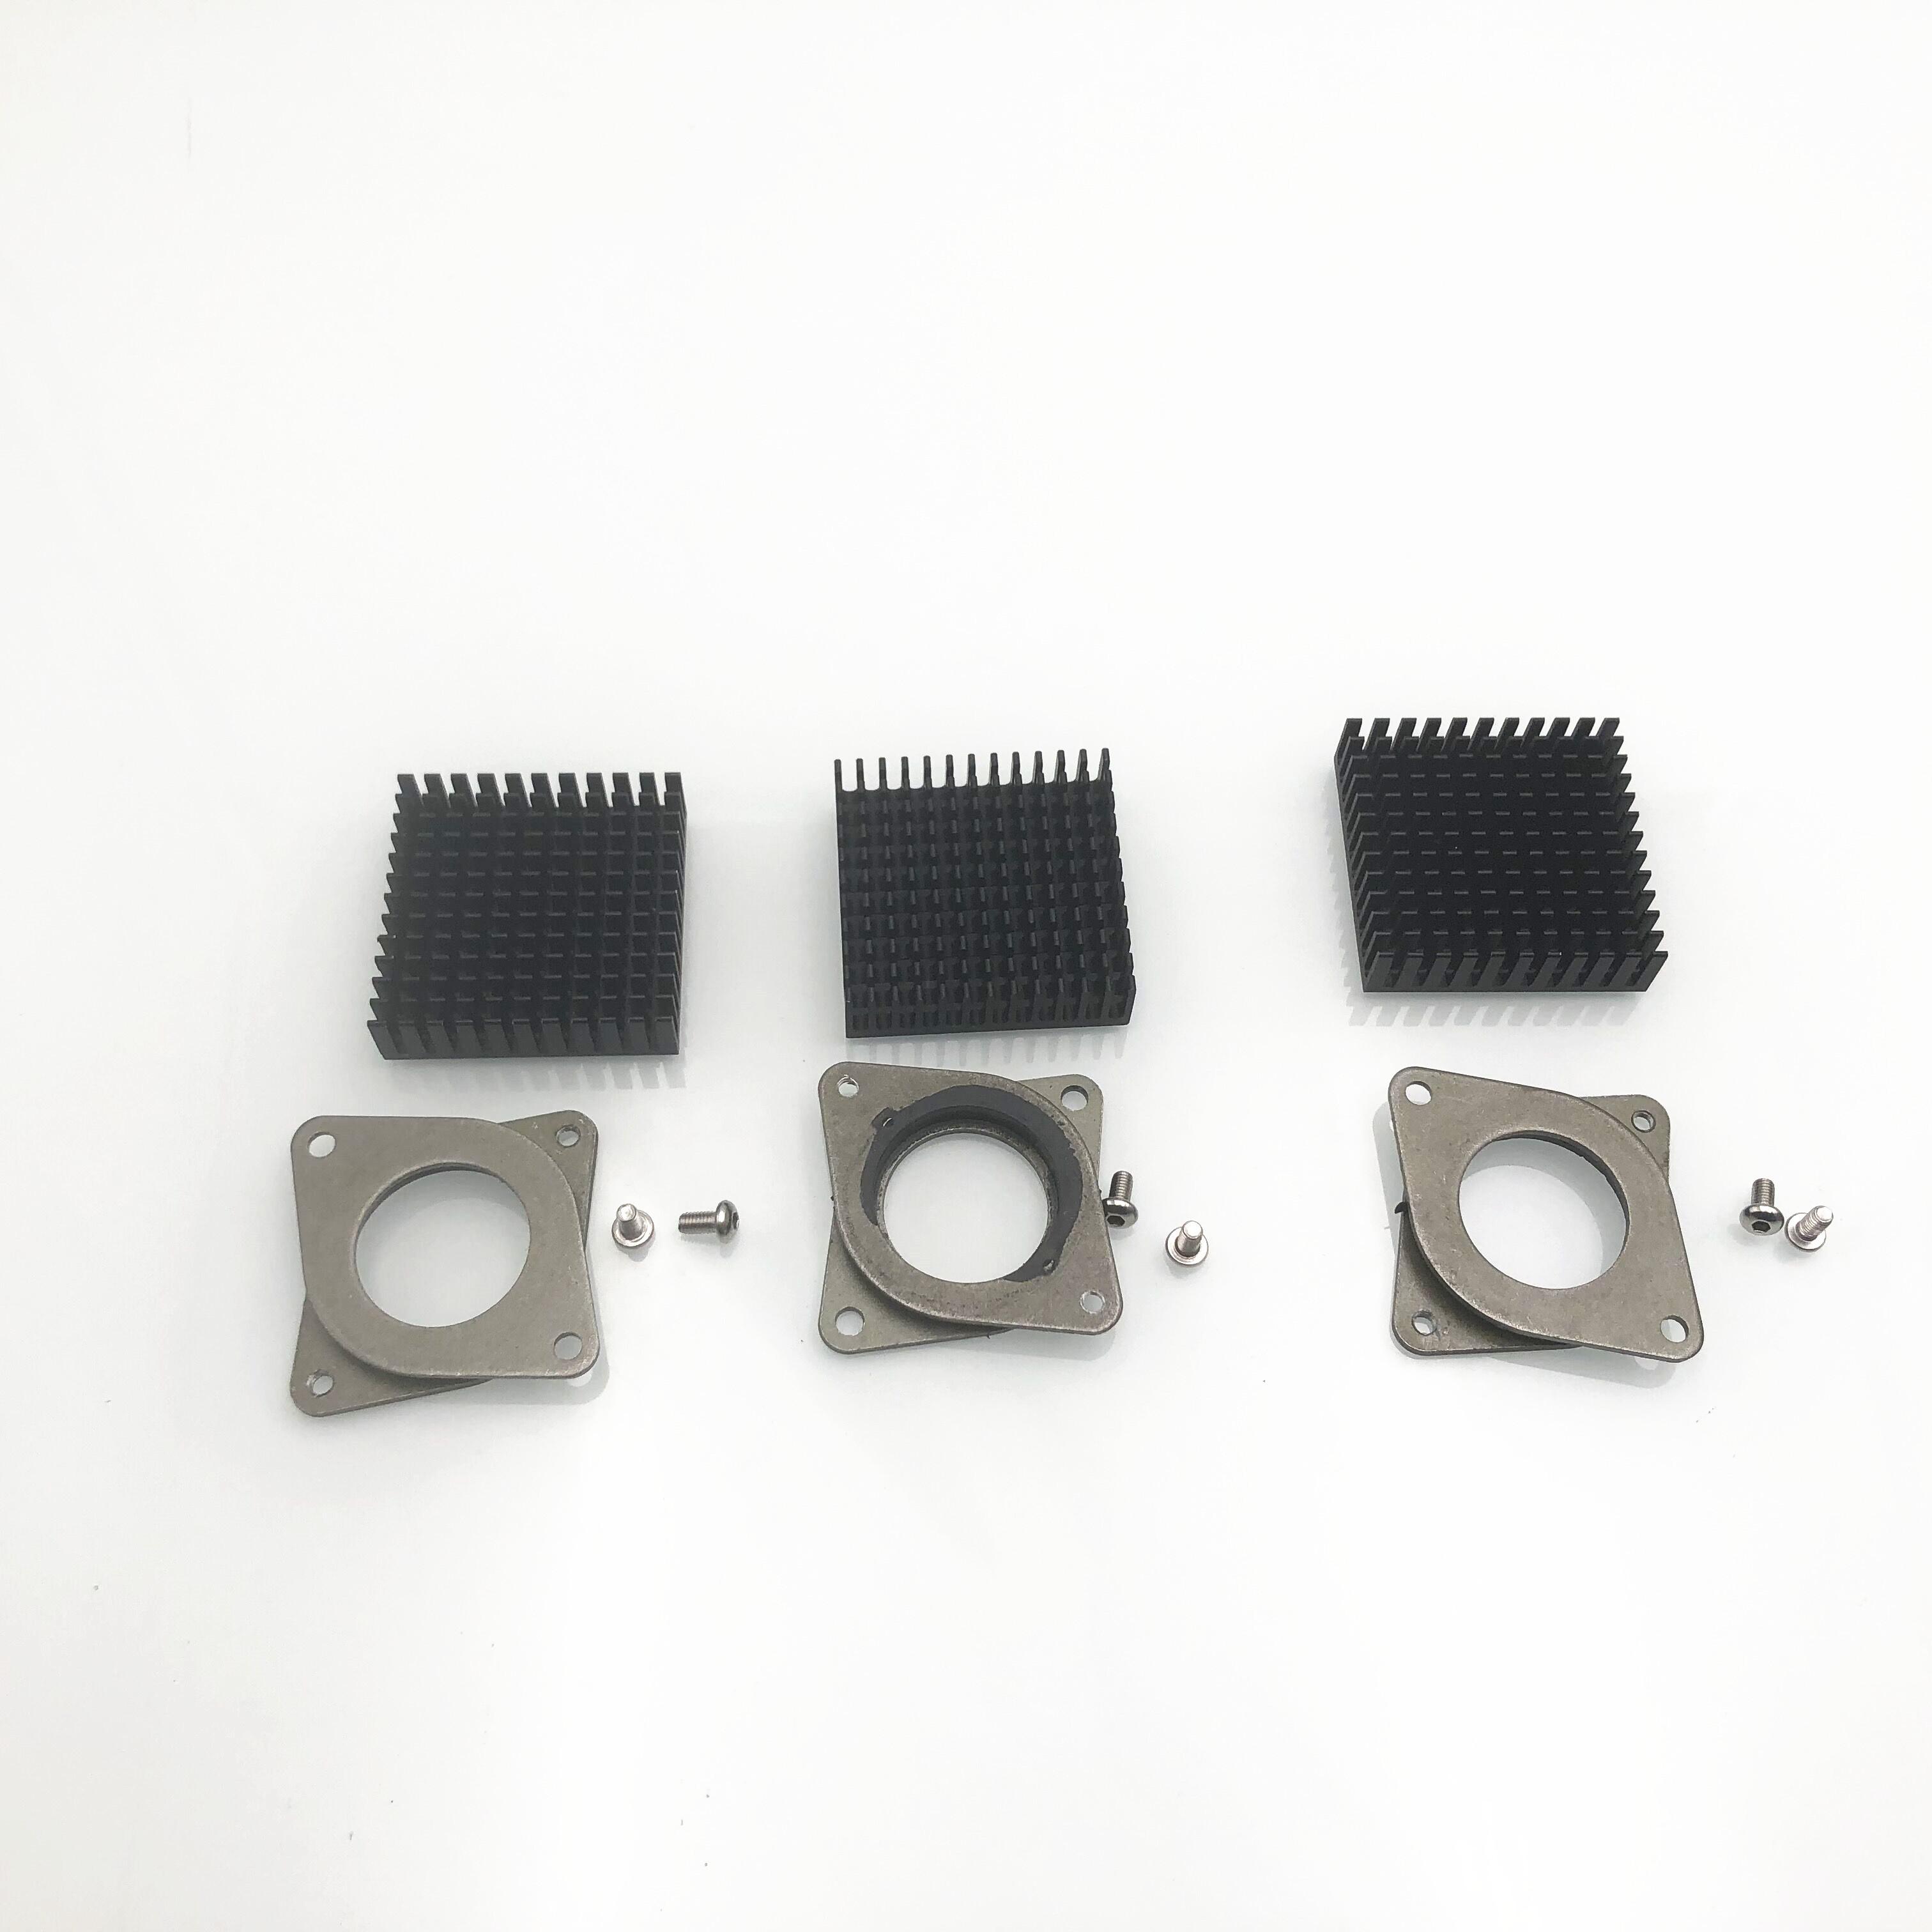 Stepper Rubber Vibration Dampers With Screws For Creality CR-10 10S 3D Printer